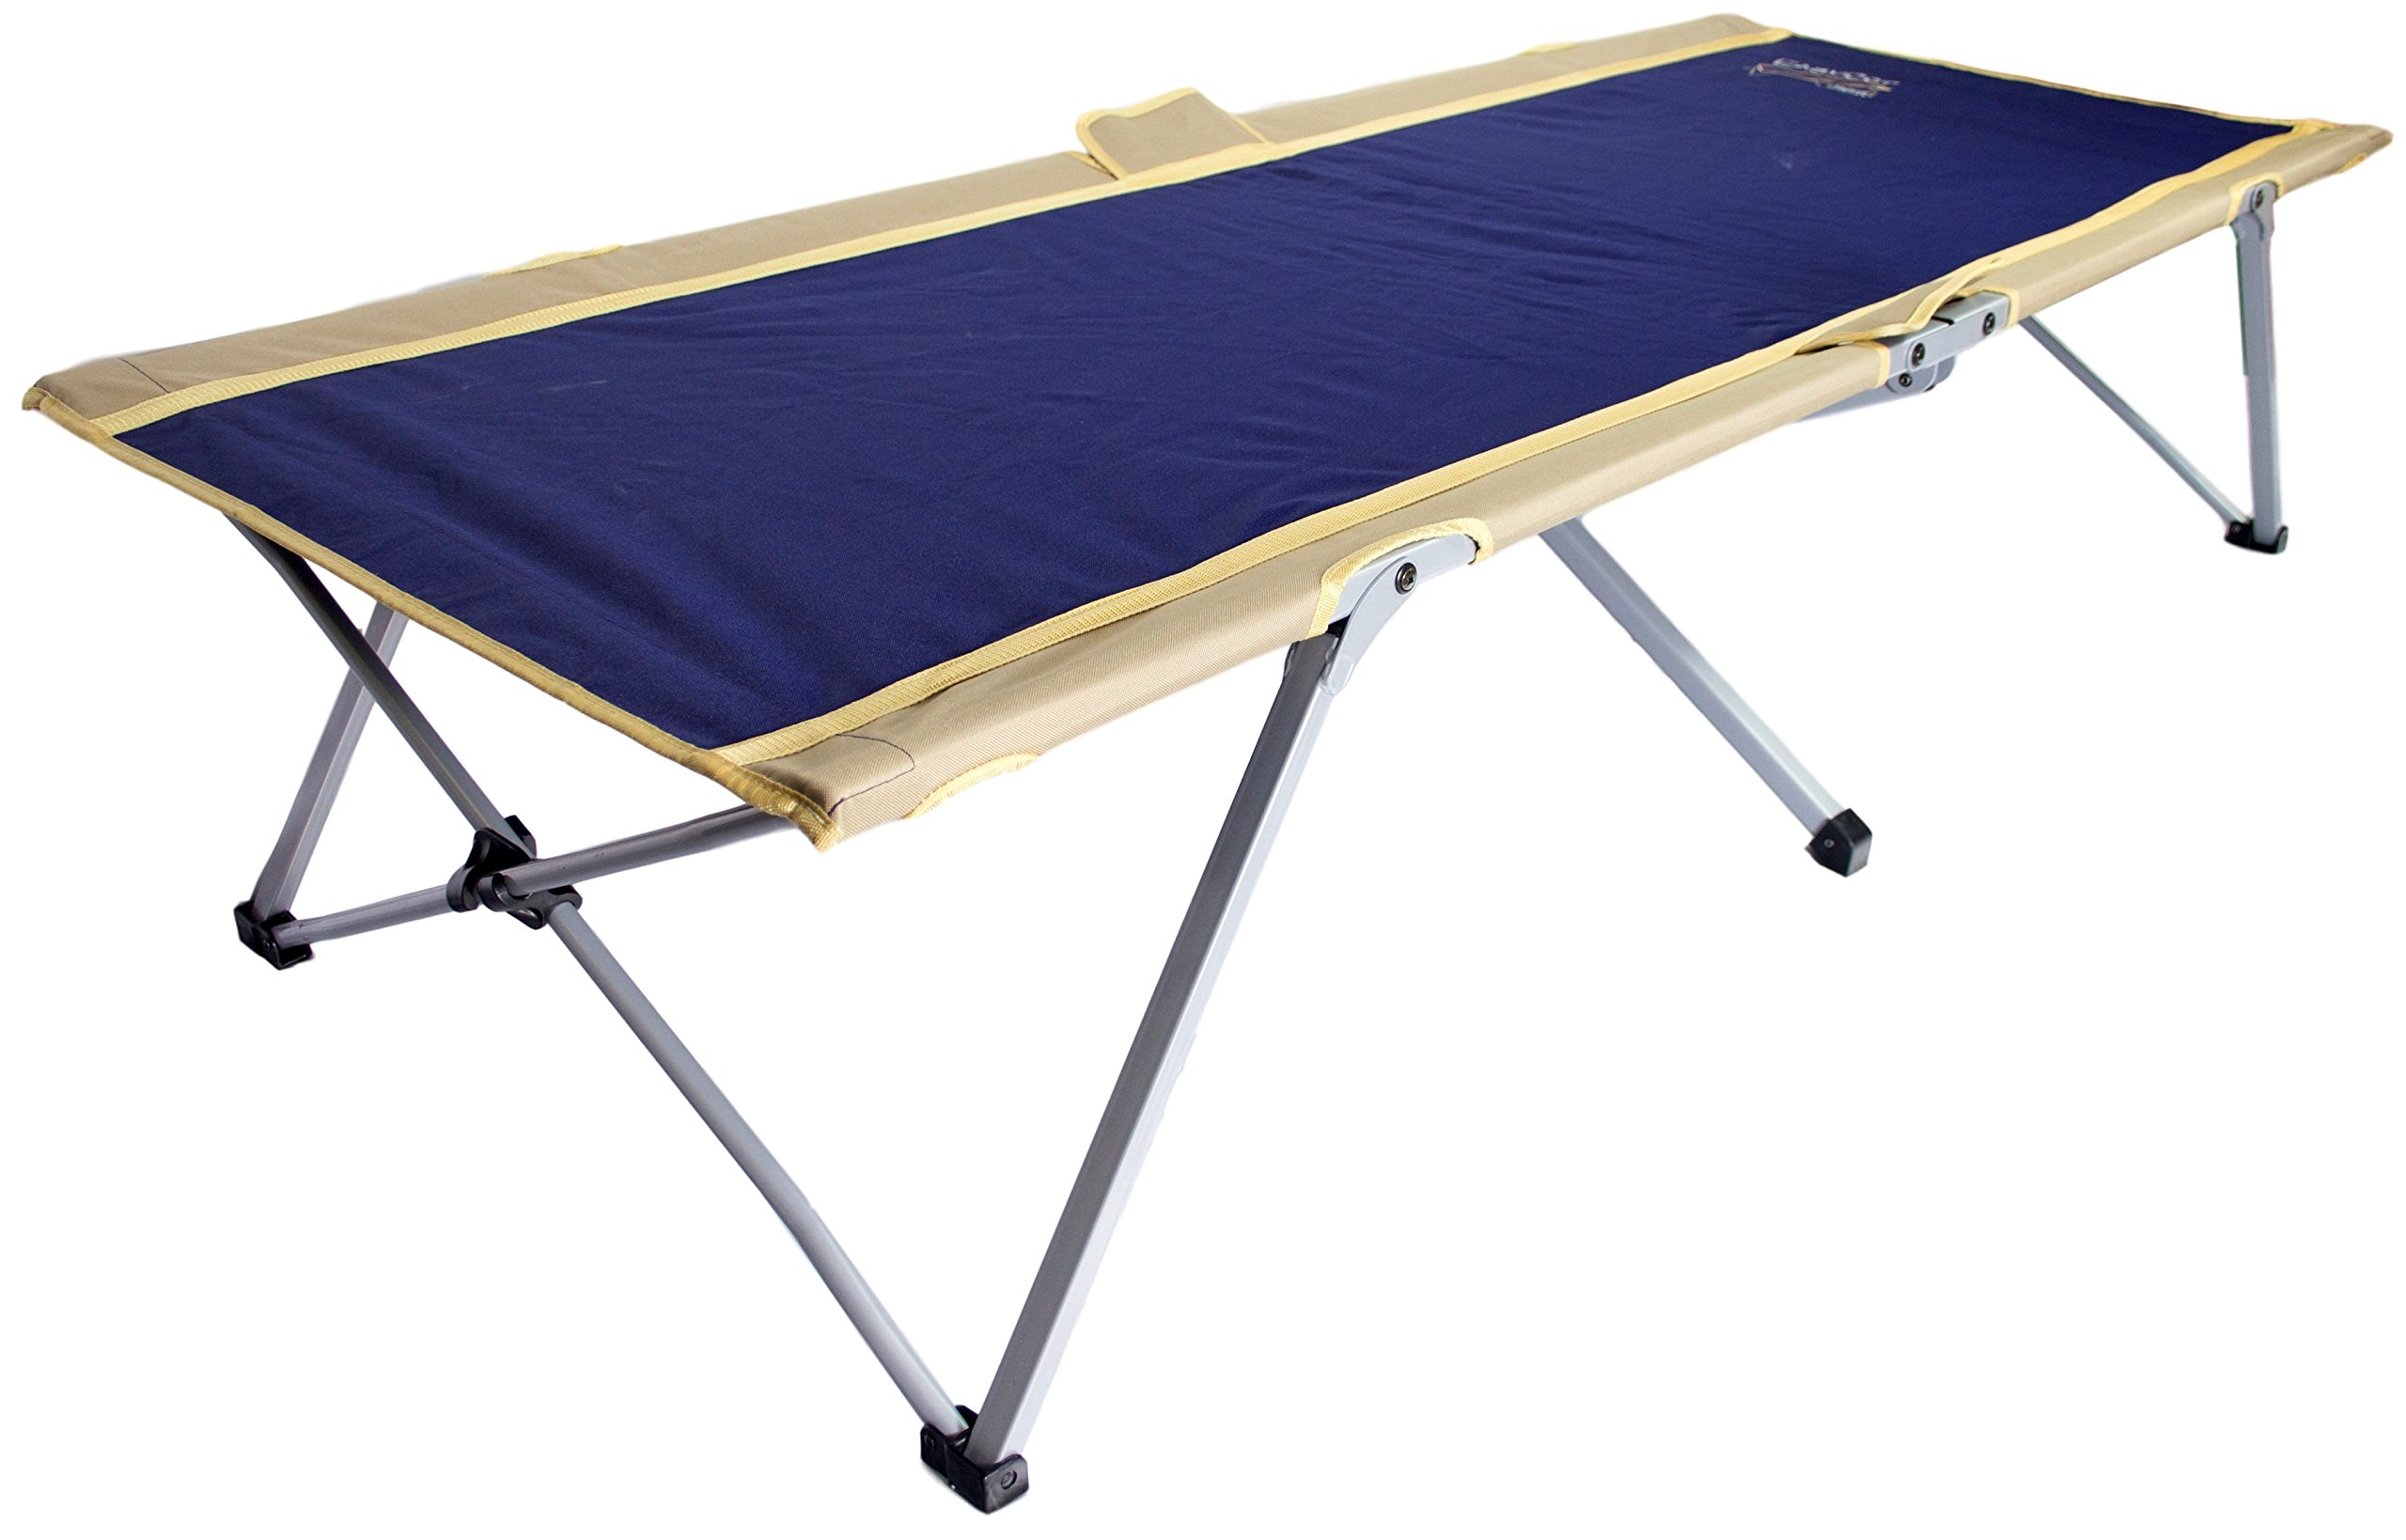 Byer of Maine Easy Cot, Ideal for Camping and Hunting, Indoor Guest Bed, Easiest Cot to Assemble, Comes with Travel Bag, Single/Twin Size